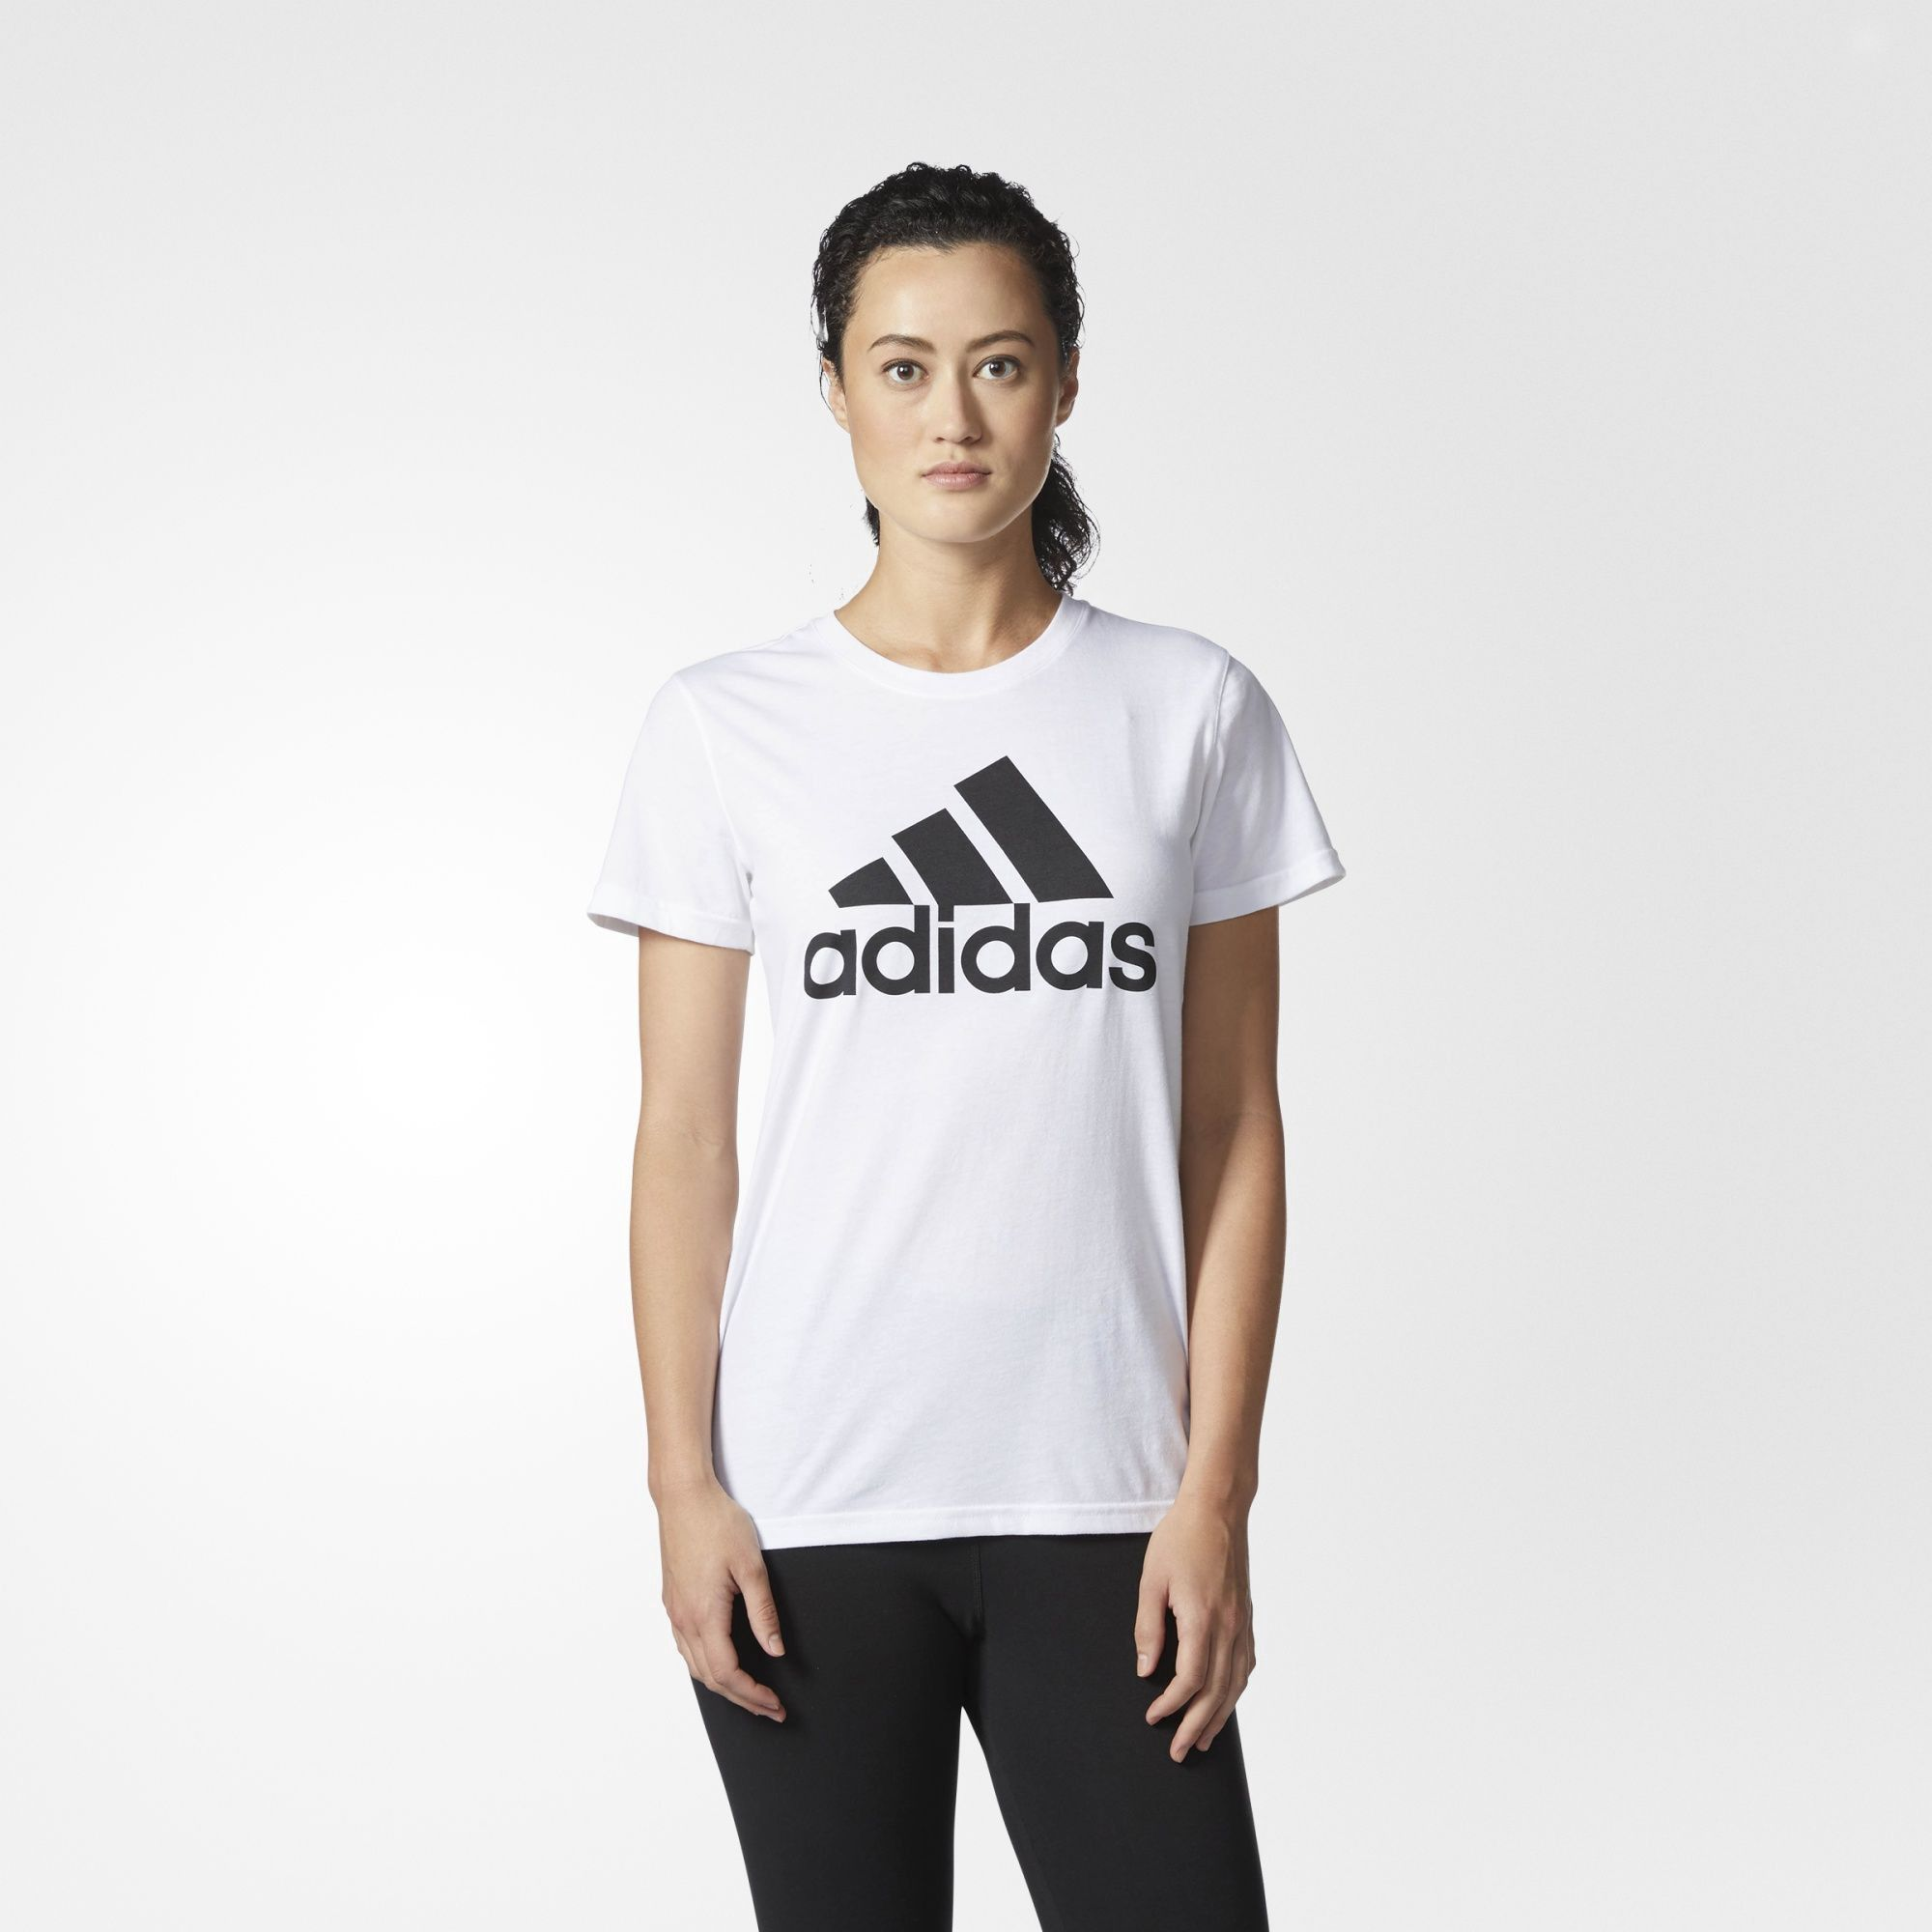 28559c2c1 ADIDAS ORIGINALS Badge of Sport Classic Tee.  adidasoriginals  cloth ...